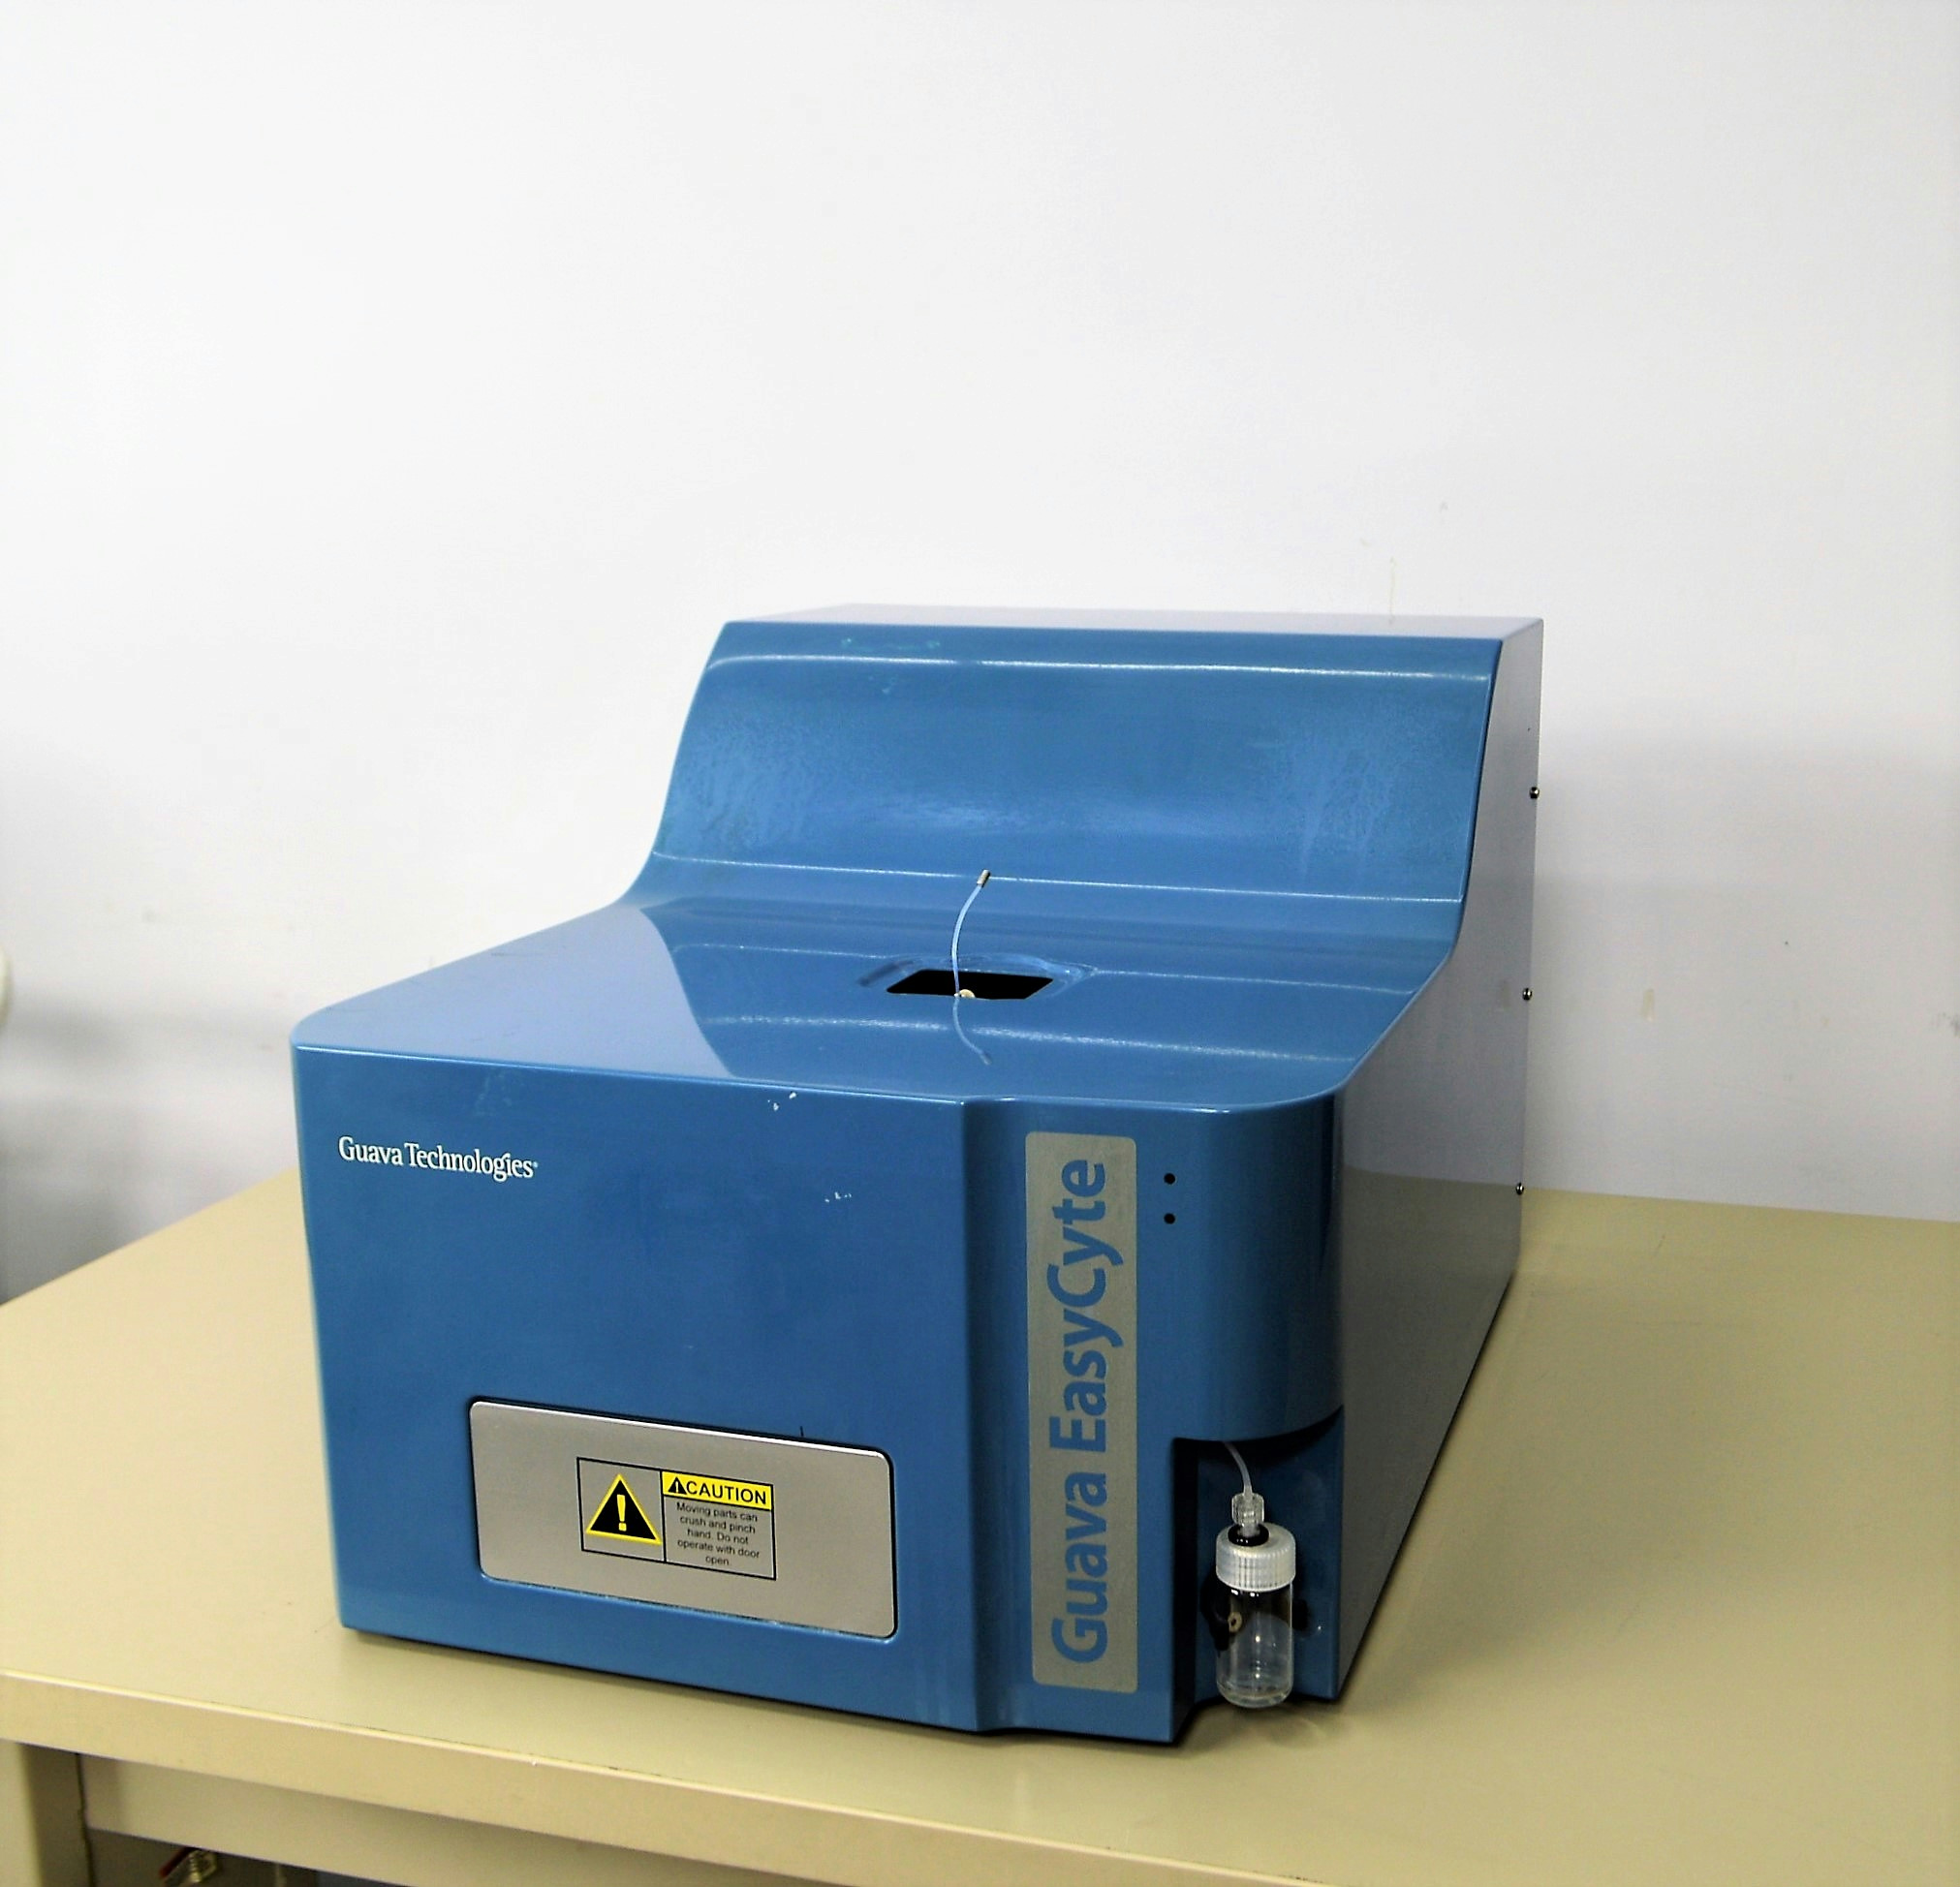 Millipore Guava EasyCyte Flow Cytometer Analytical Cell Counter (Parts)